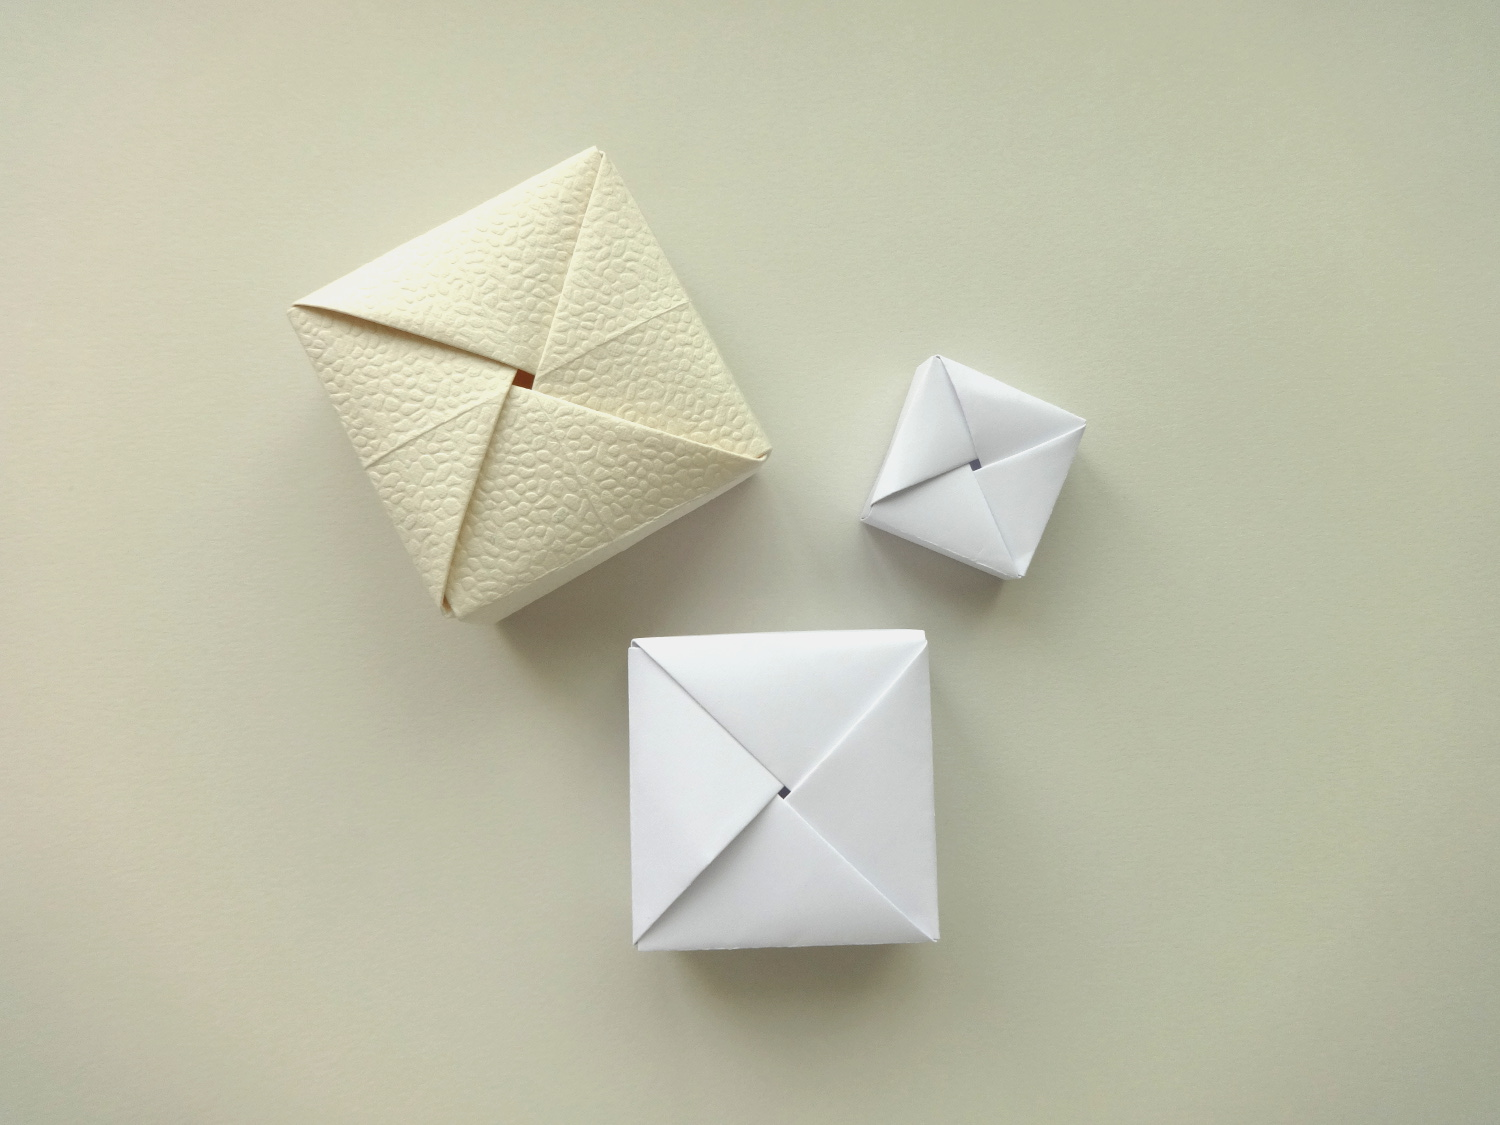 5 pointed origami star instructions and tutorial | 1125x1500